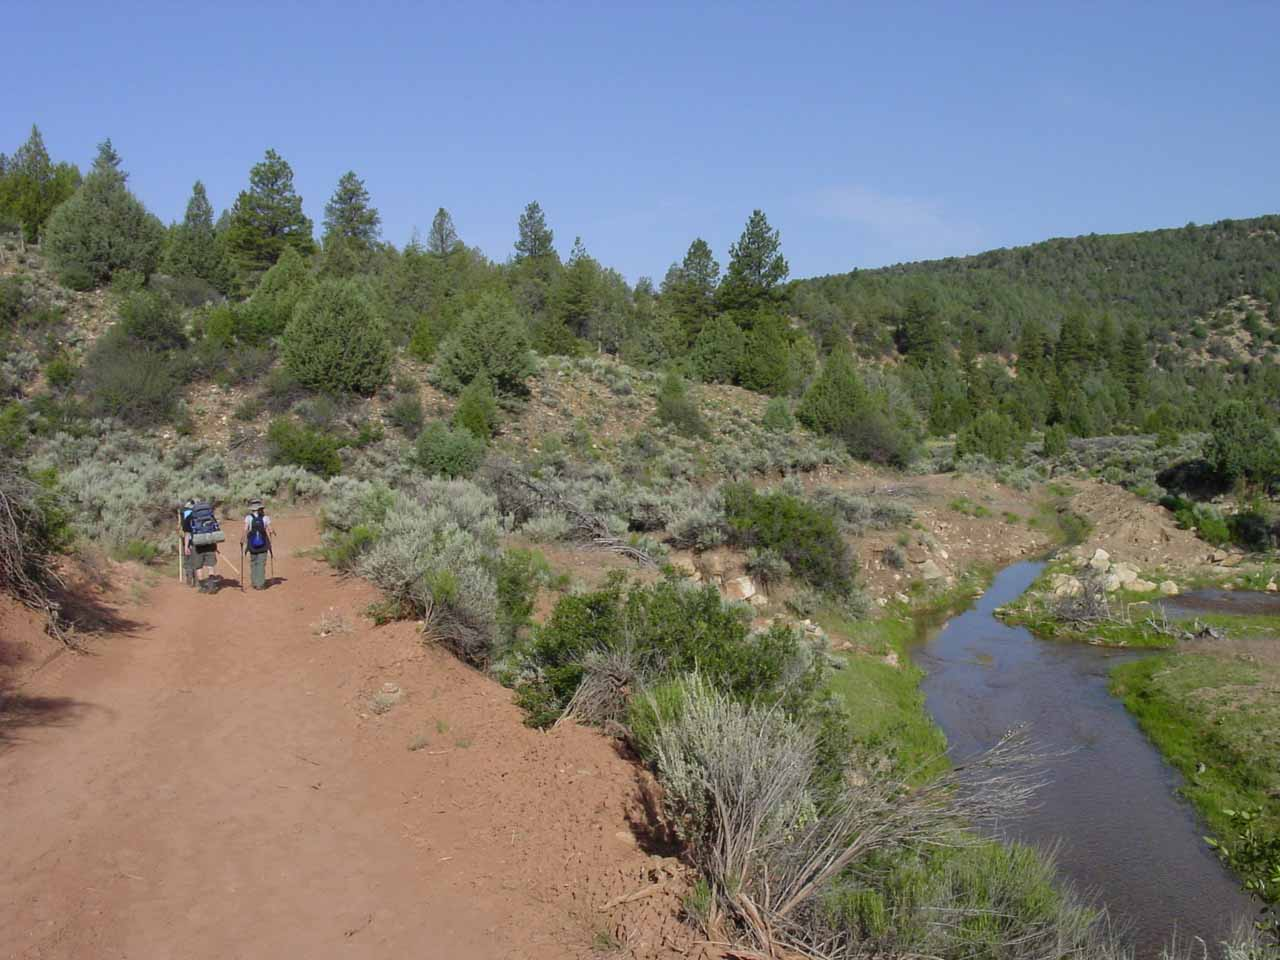 Walking along the Virgin River as we went through Chamberlain's Ranch